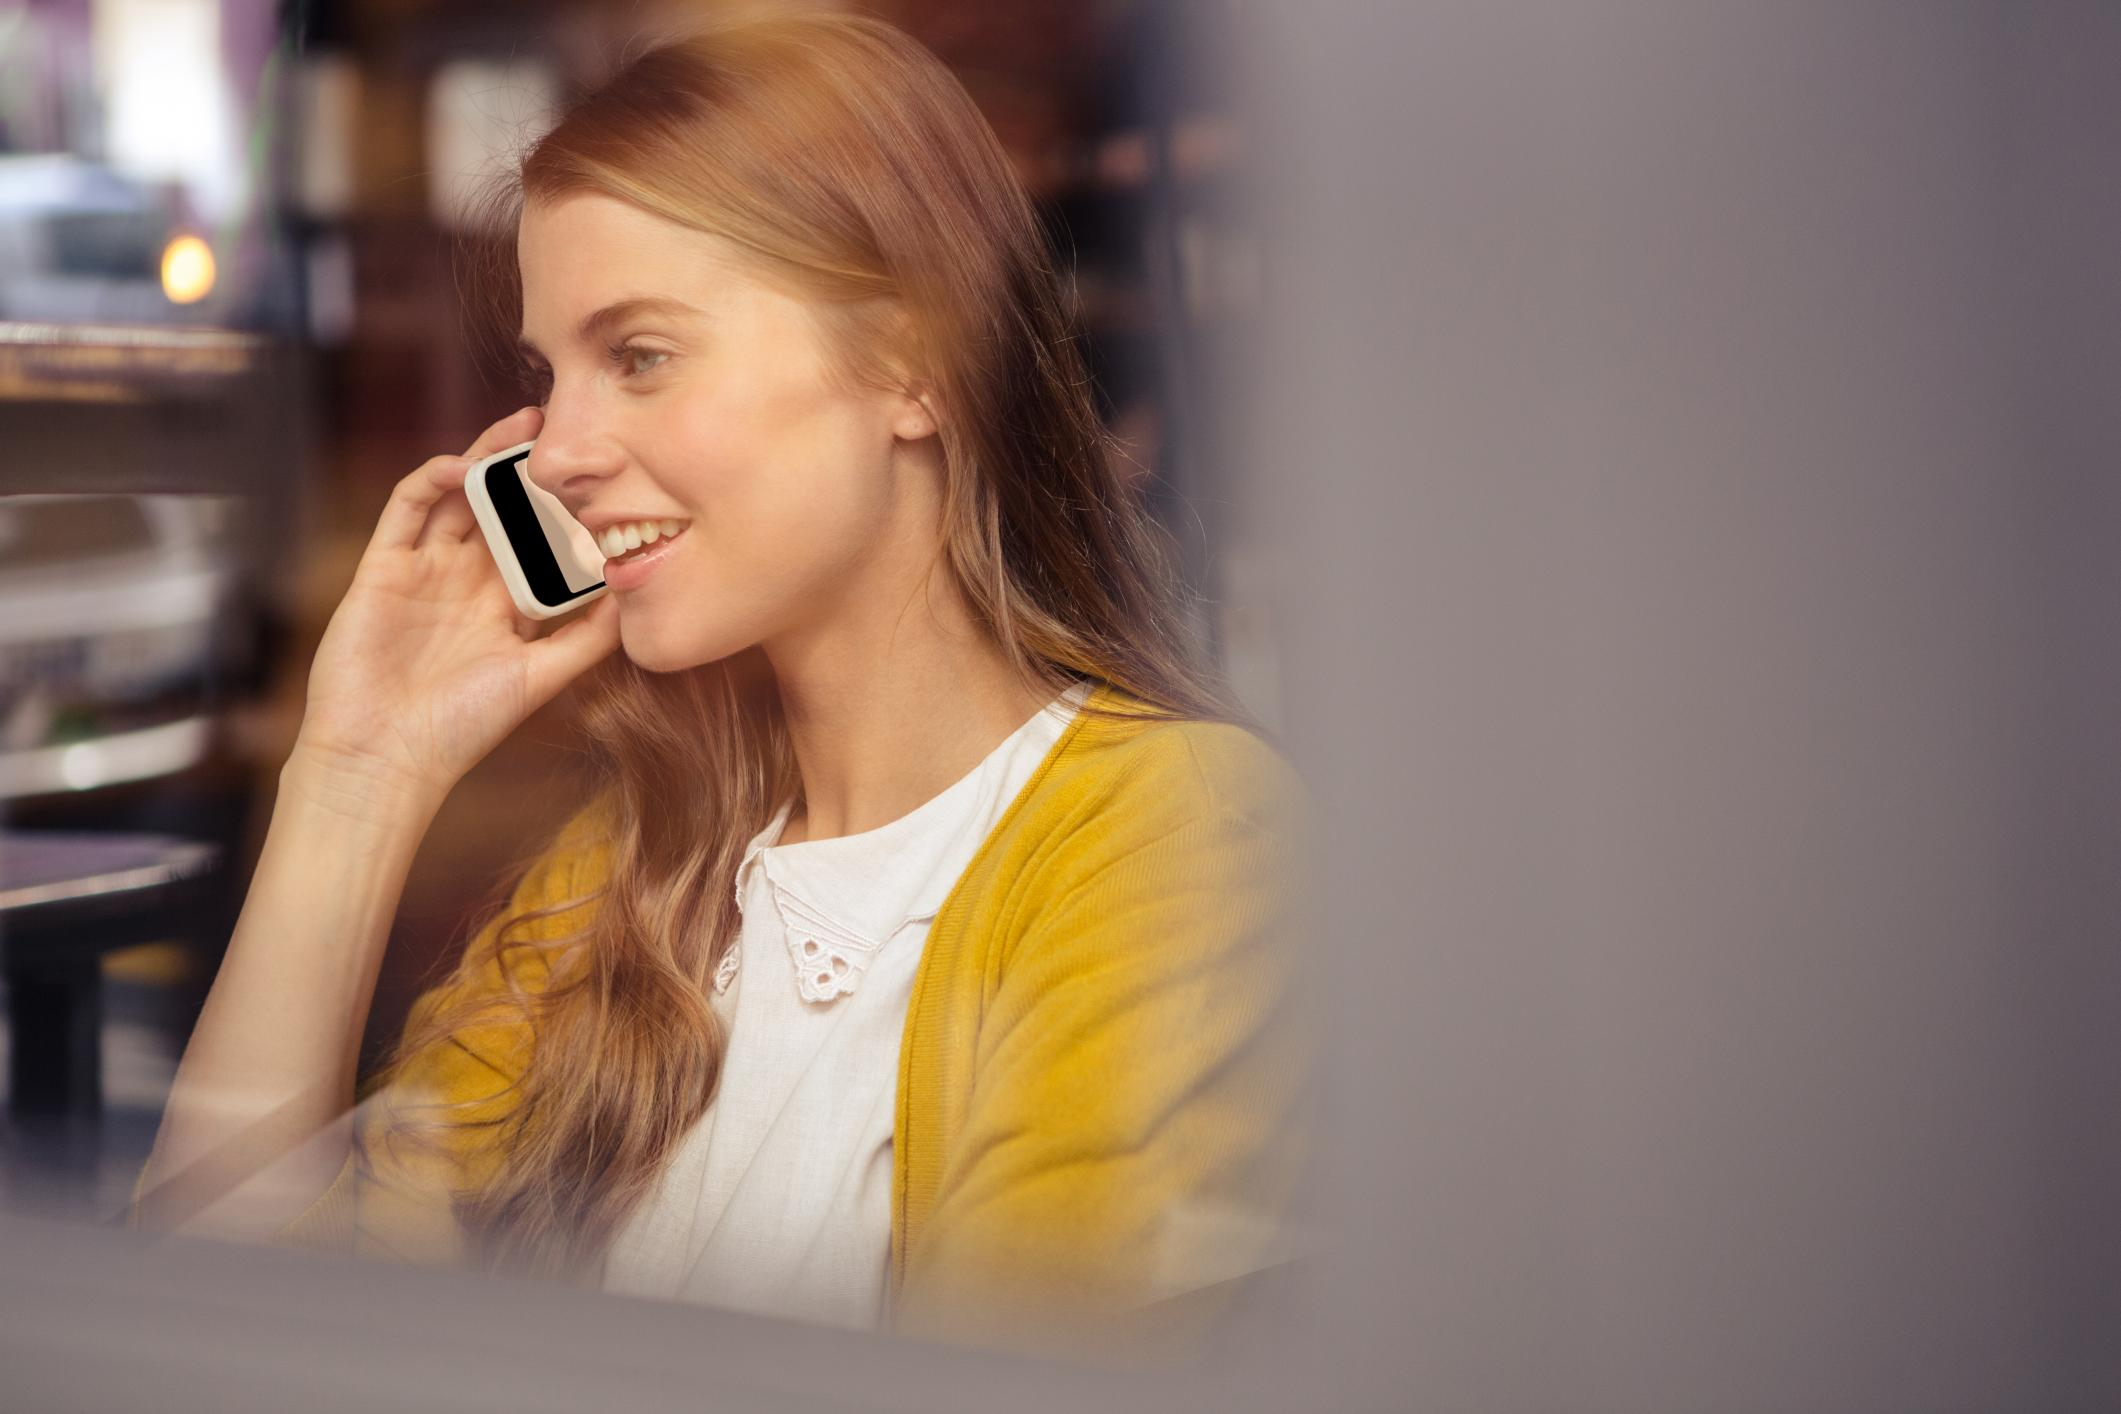 This is a pictue of a lady having a phone call.